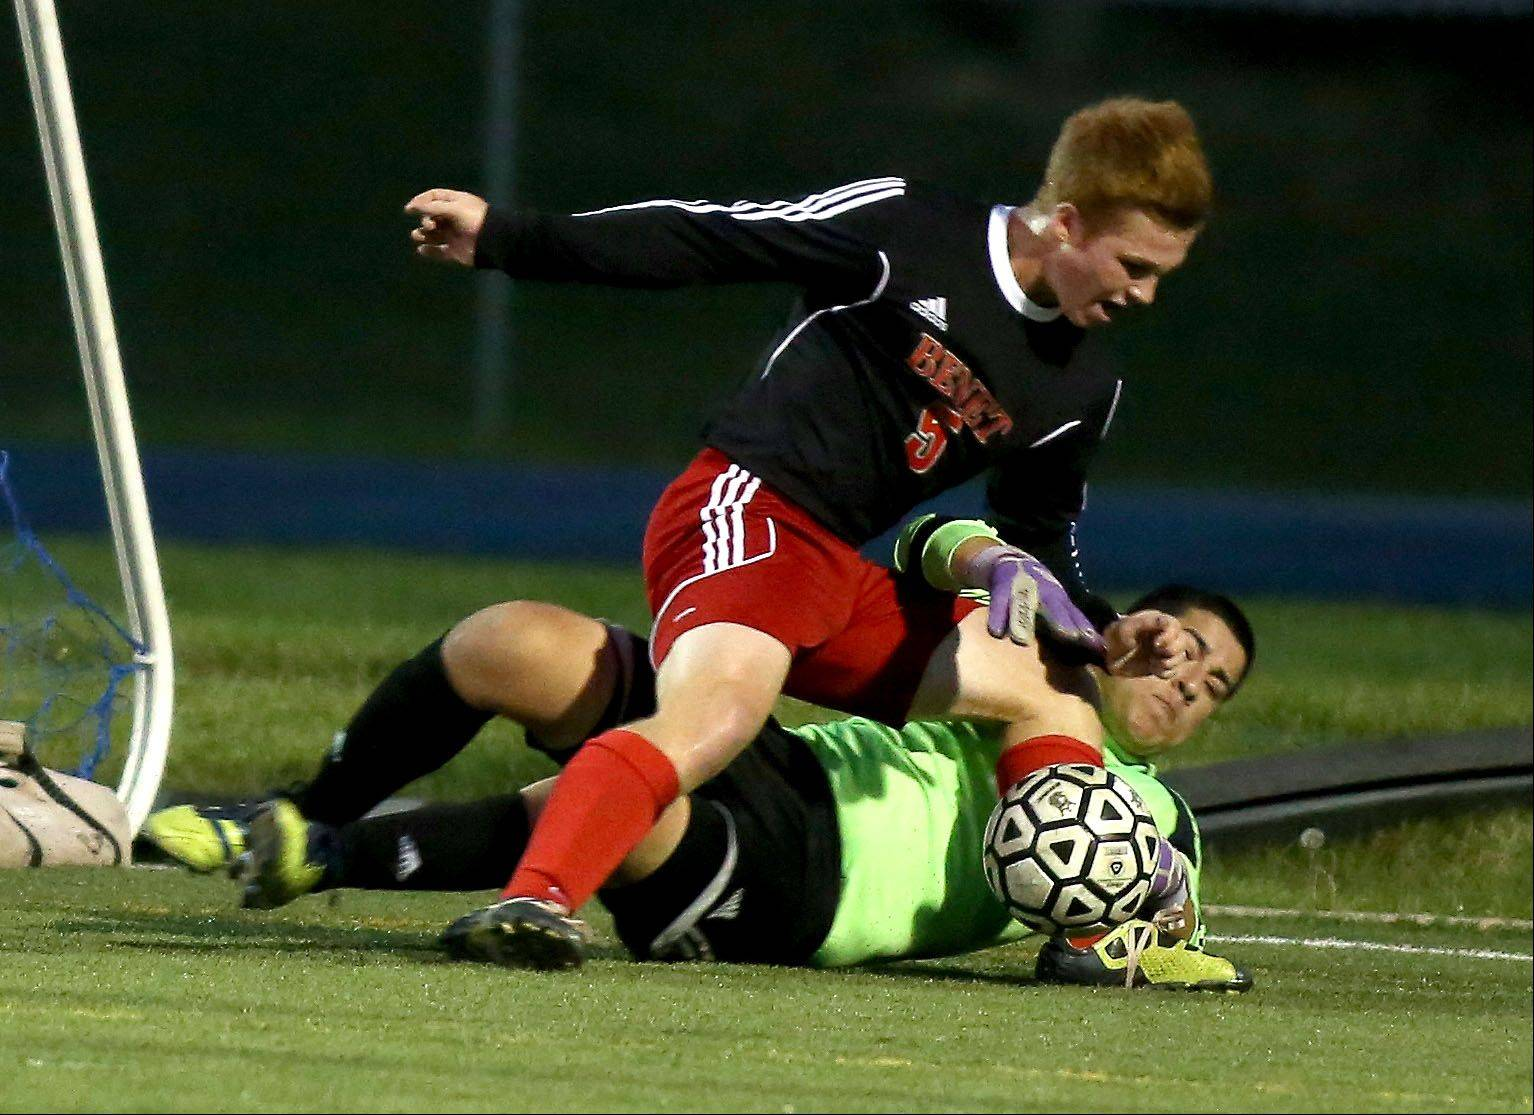 Benet Academy�s Paddy Lawler collides with West Chicago goalkeeper Paolino Mansera during a save Monday.